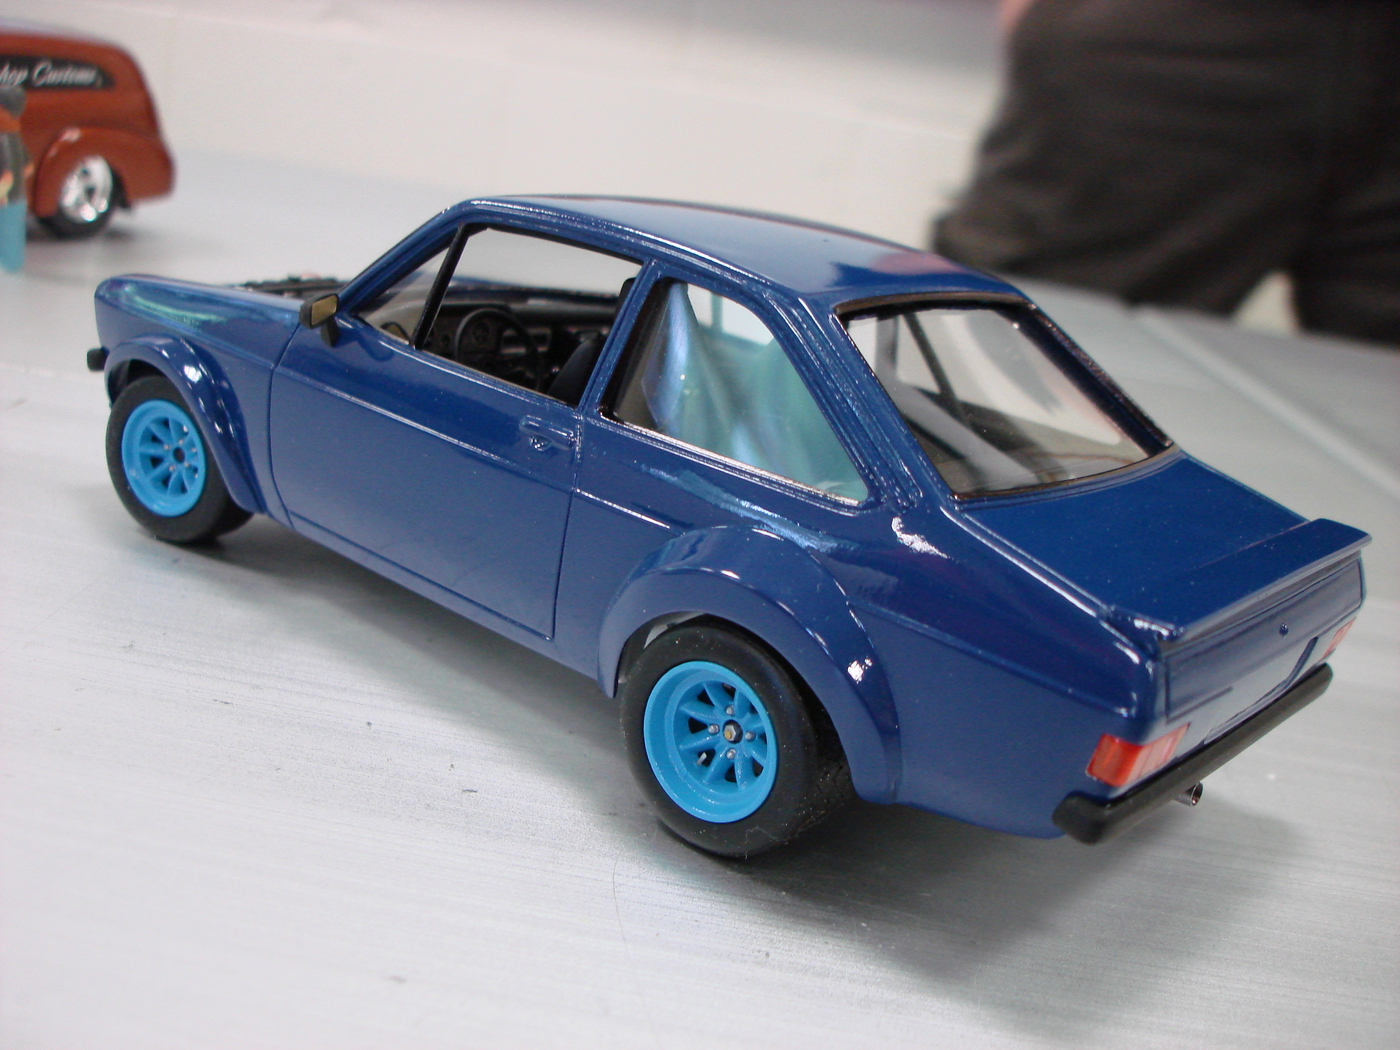 Ford Escort Rs1800 8 12 15 Update Page 23 On The